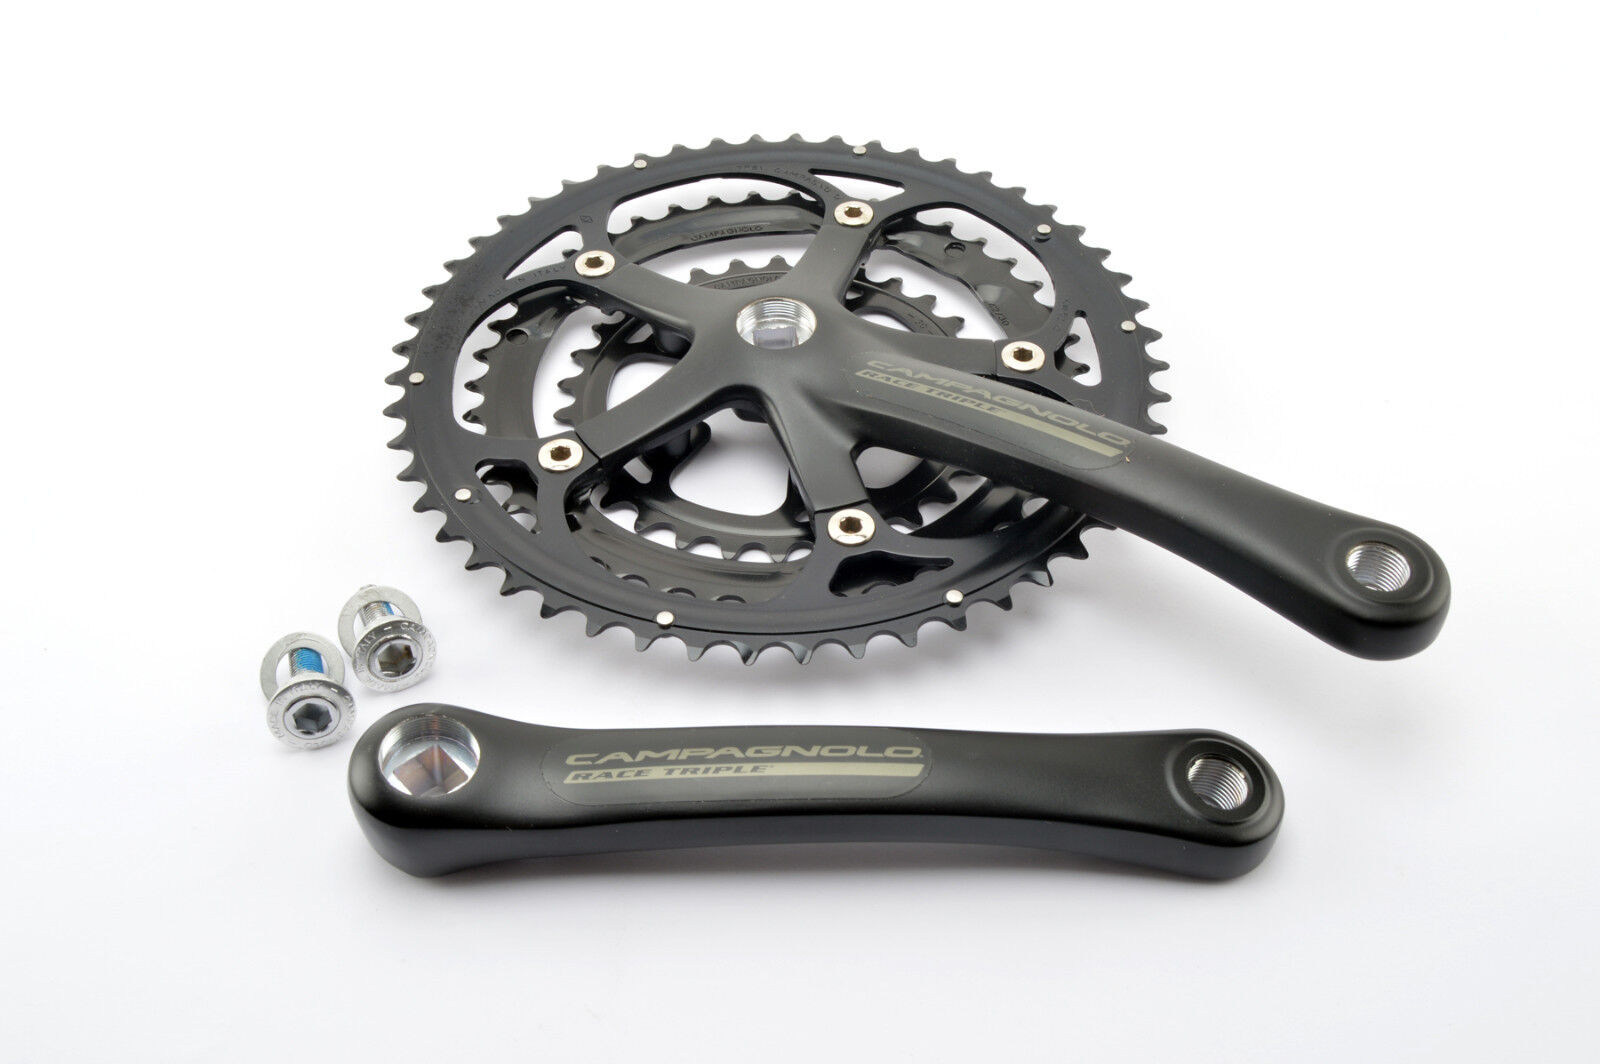 New Campagnolo racing triple crankset with 30 42 52 teeth and 170mm length nos